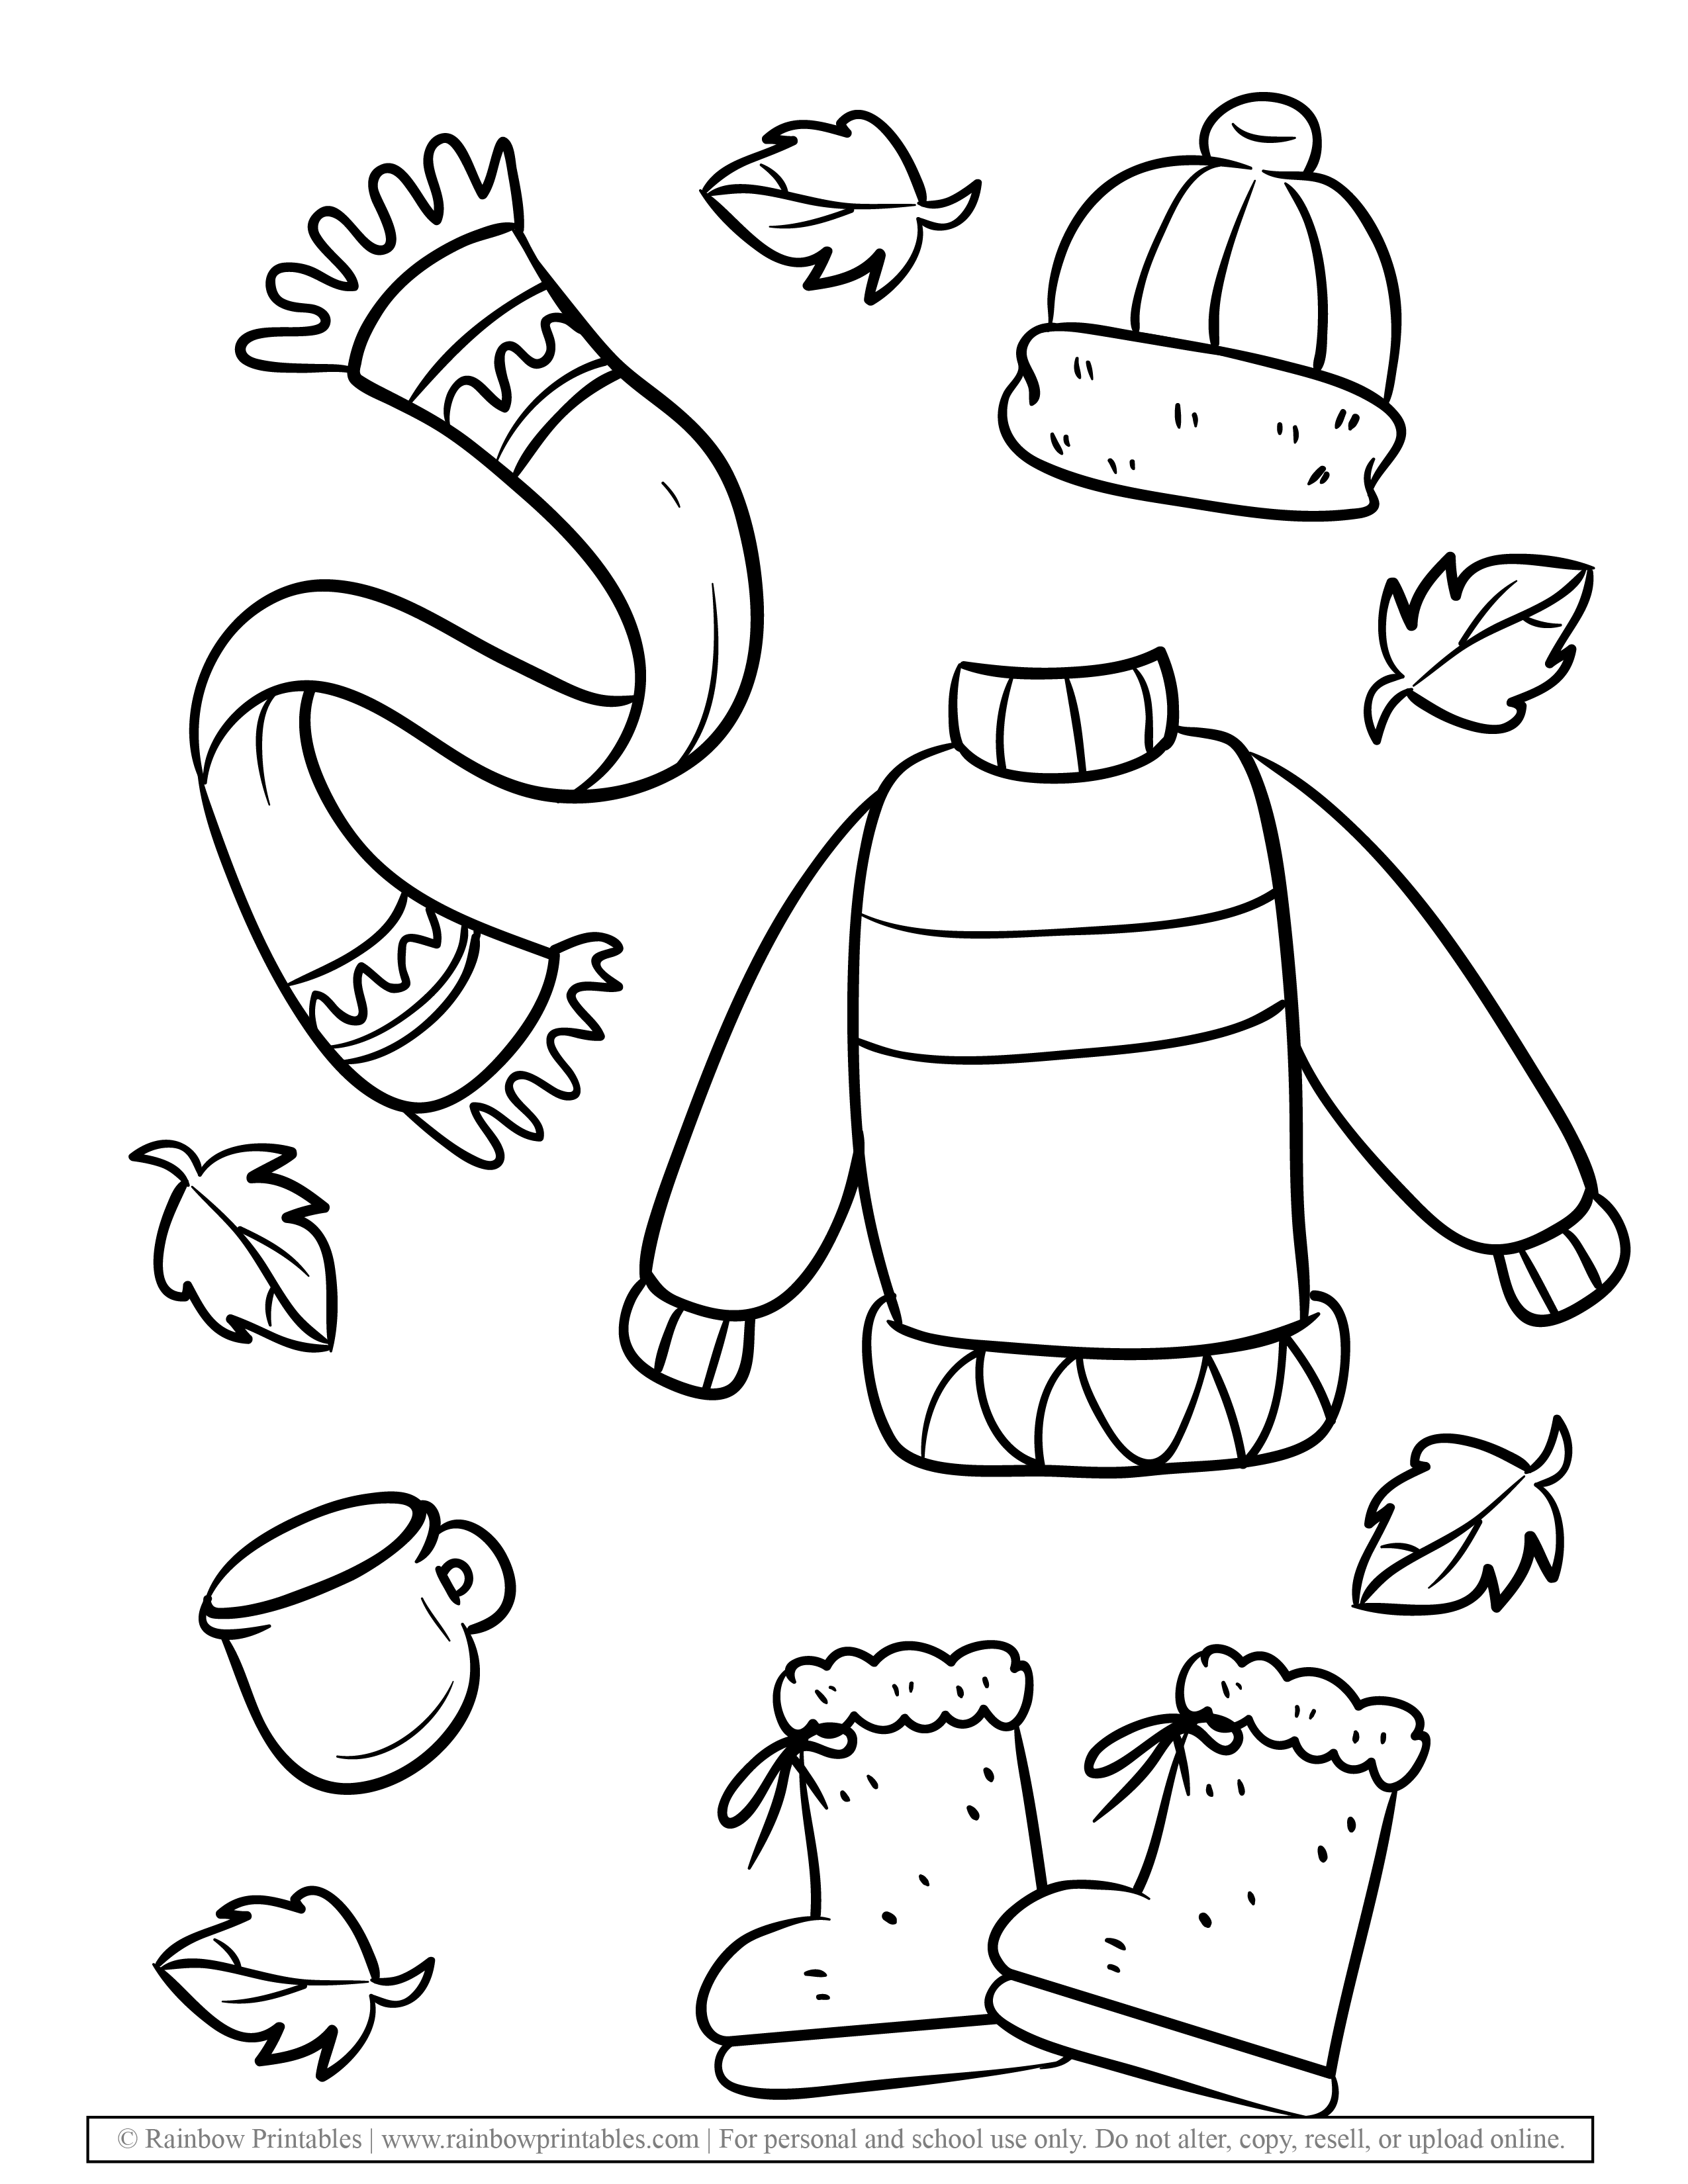 Fall fashion Autumn Clothing Seasonal Coloring Scarf, Mittens, Ear muffs, Puff Ball Hat coloring Page for kids (2)